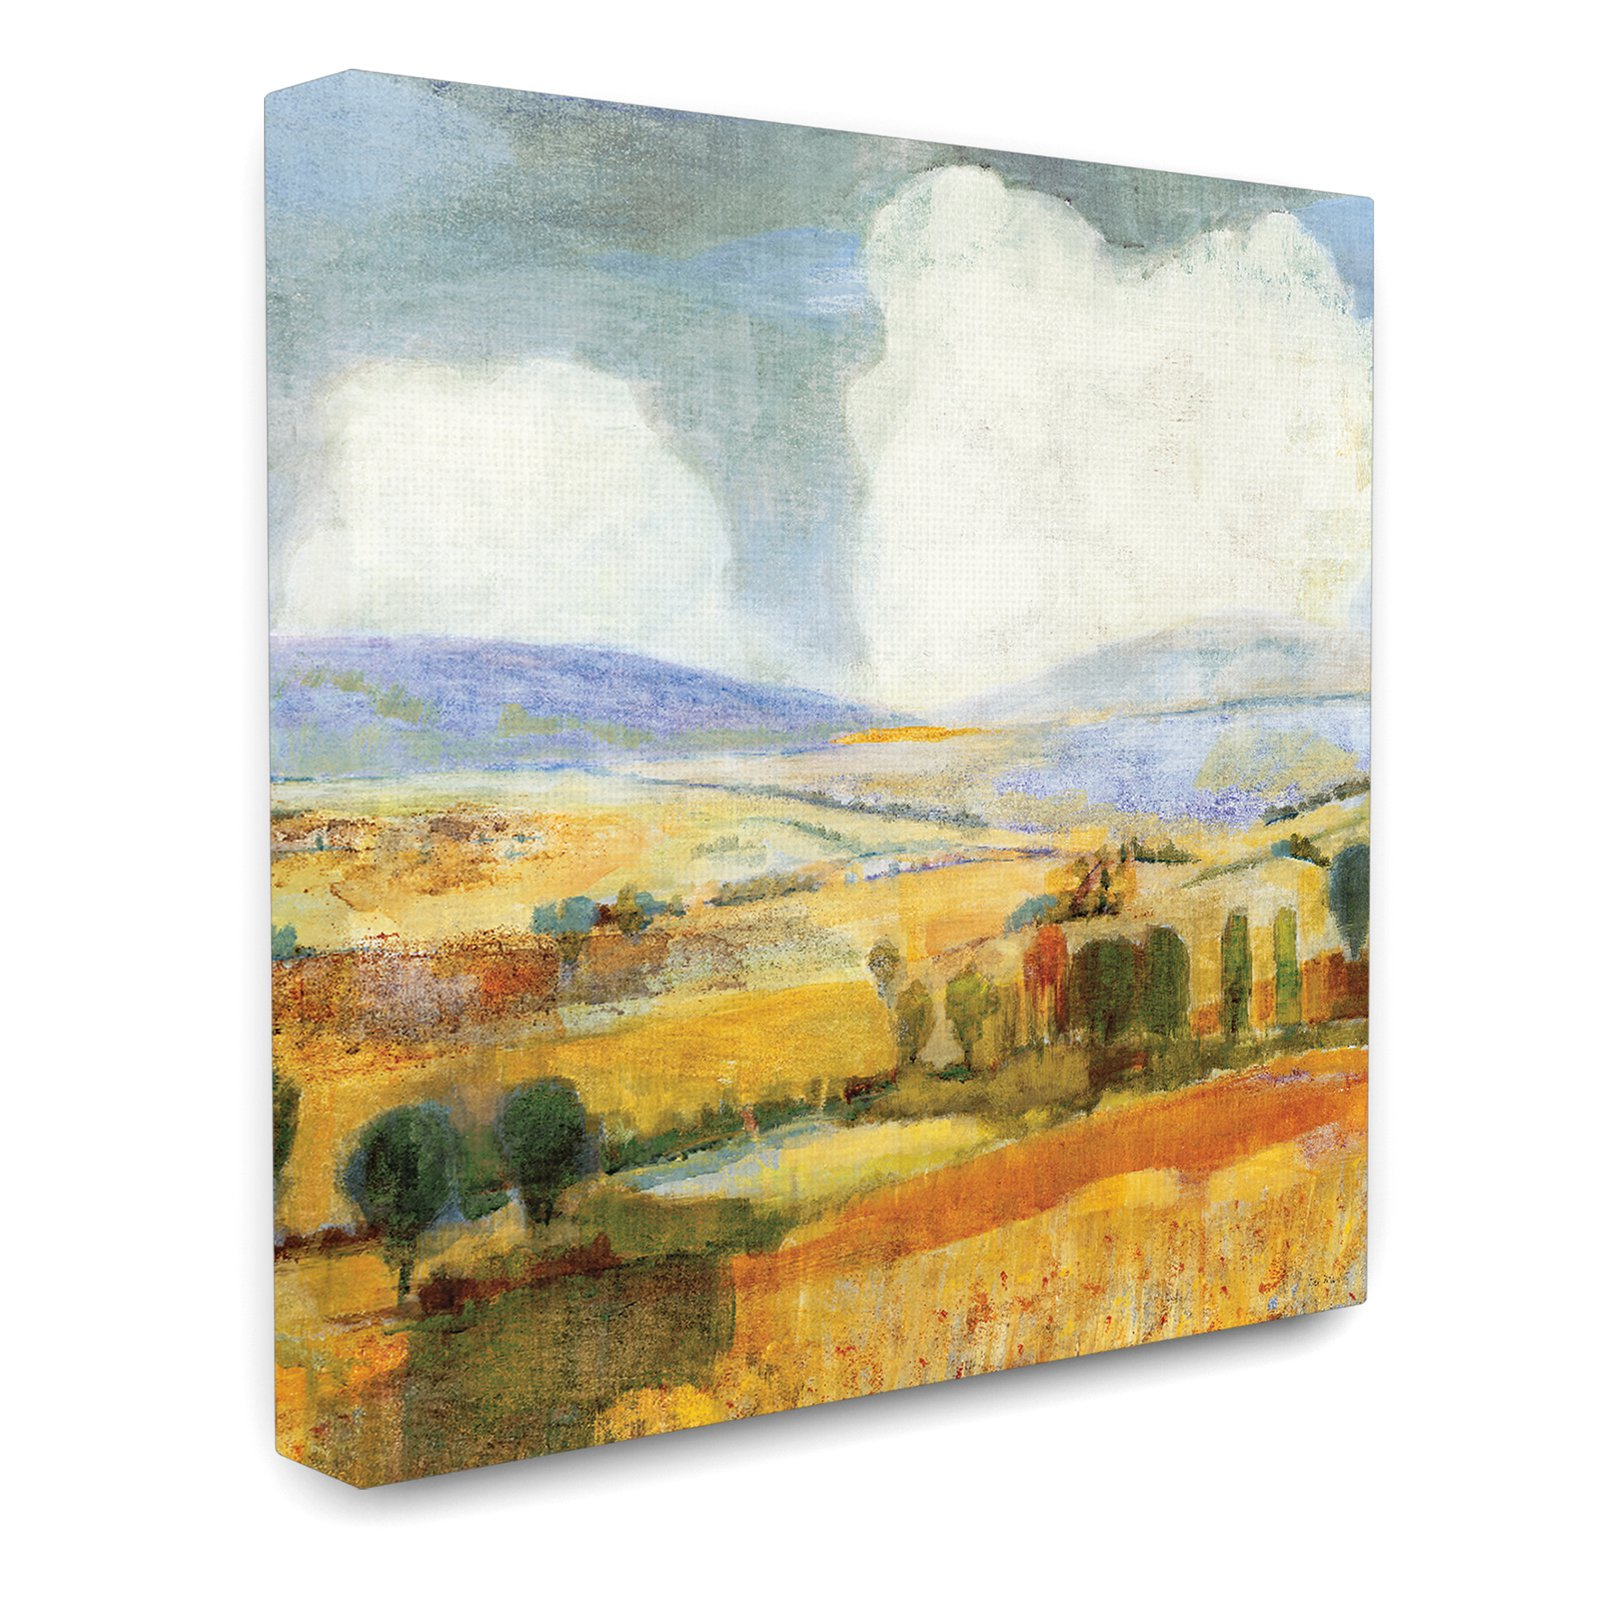 The Stupell Home Decor Collection Golden Pastures Landscape Canvas Wall Art